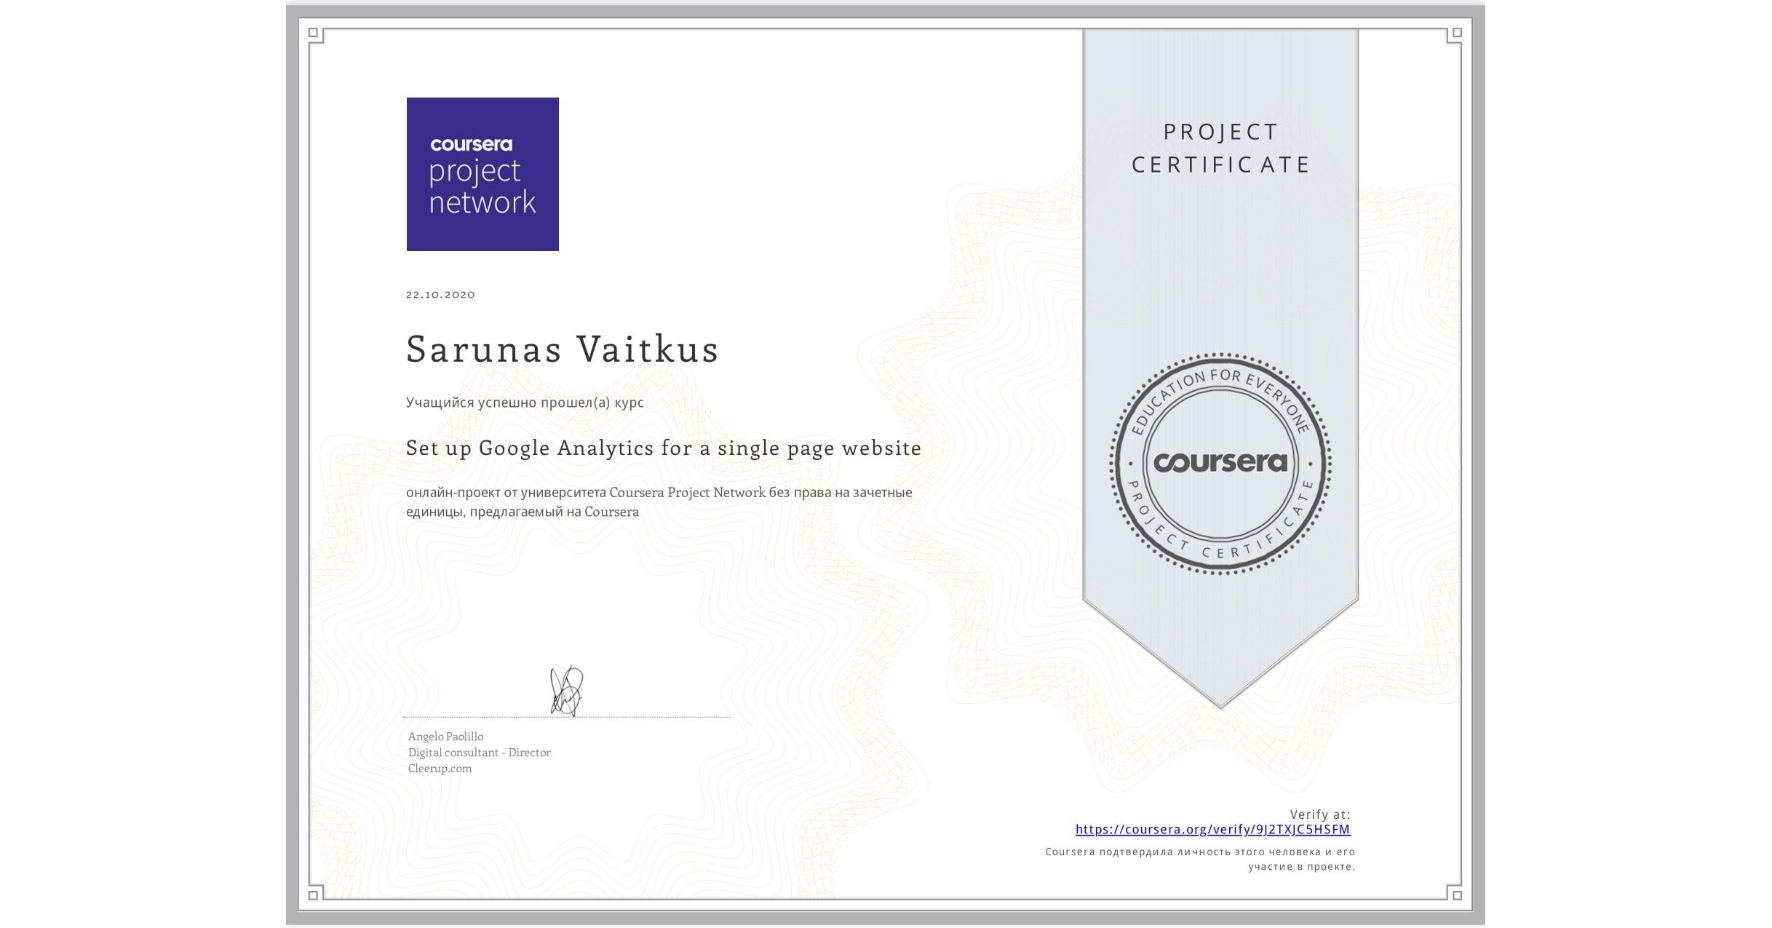 View certificate for Sarunas Vaitkus, Set up Google Analytics for a single page website, an online non-credit course authorized by Coursera Project Network and offered through Coursera